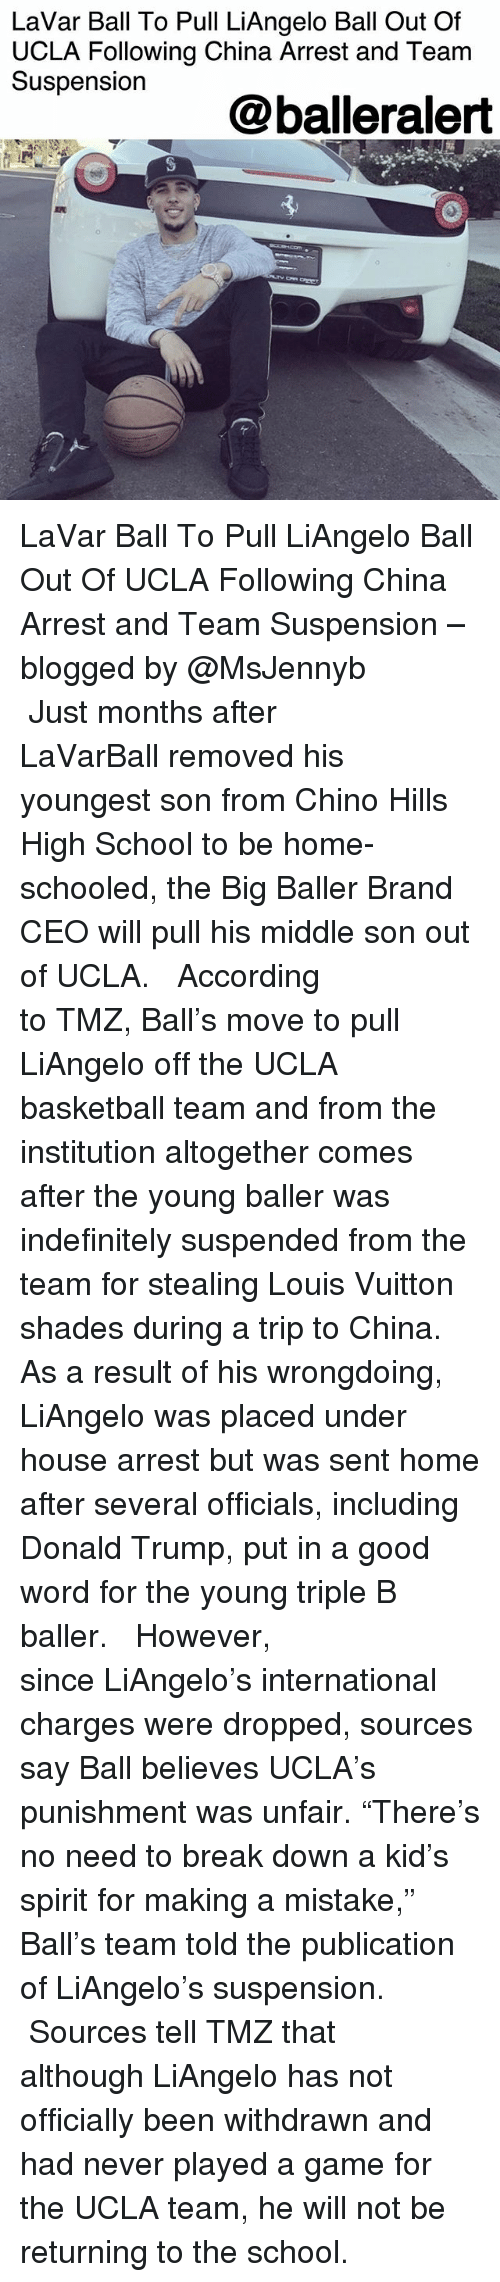 "Louis Vuitton: LaVar Ball To Pull LiAngelo Ball Out Of  UCLA Following China Arrest and Team  Suspension  @balleralert LaVar Ball To Pull LiAngelo Ball Out Of UCLA Following China Arrest and Team Suspension – blogged by @MsJennyb ⠀⠀⠀⠀⠀⠀⠀ ⠀⠀⠀⠀⠀⠀⠀ Just months after LaVarBall removed his youngest son from Chino Hills High School to be home-schooled, the Big Baller Brand CEO will pull his middle son out of UCLA. ⠀⠀⠀⠀⠀⠀⠀ ⠀⠀⠀⠀⠀⠀⠀ According to TMZ, Ball's move to pull LiAngelo off the UCLA basketball team and from the institution altogether comes after the young baller was indefinitely suspended from the team for stealing Louis Vuitton shades during a trip to China. As a result of his wrongdoing, LiAngelo was placed under house arrest but was sent home after several officials, including Donald Trump, put in a good word for the young triple B baller. ⠀⠀⠀⠀⠀⠀⠀ ⠀⠀⠀⠀⠀⠀⠀ However, since LiAngelo's international charges were dropped, sources say Ball believes UCLA's punishment was unfair. ""There's no need to break down a kid's spirit for making a mistake,"" Ball's team told the publication of LiAngelo's suspension. ⠀⠀⠀⠀⠀⠀⠀ ⠀⠀⠀⠀⠀⠀⠀ Sources tell TMZ that although LiAngelo has not officially been withdrawn and had never played a game for the UCLA team, he will not be returning to the school."